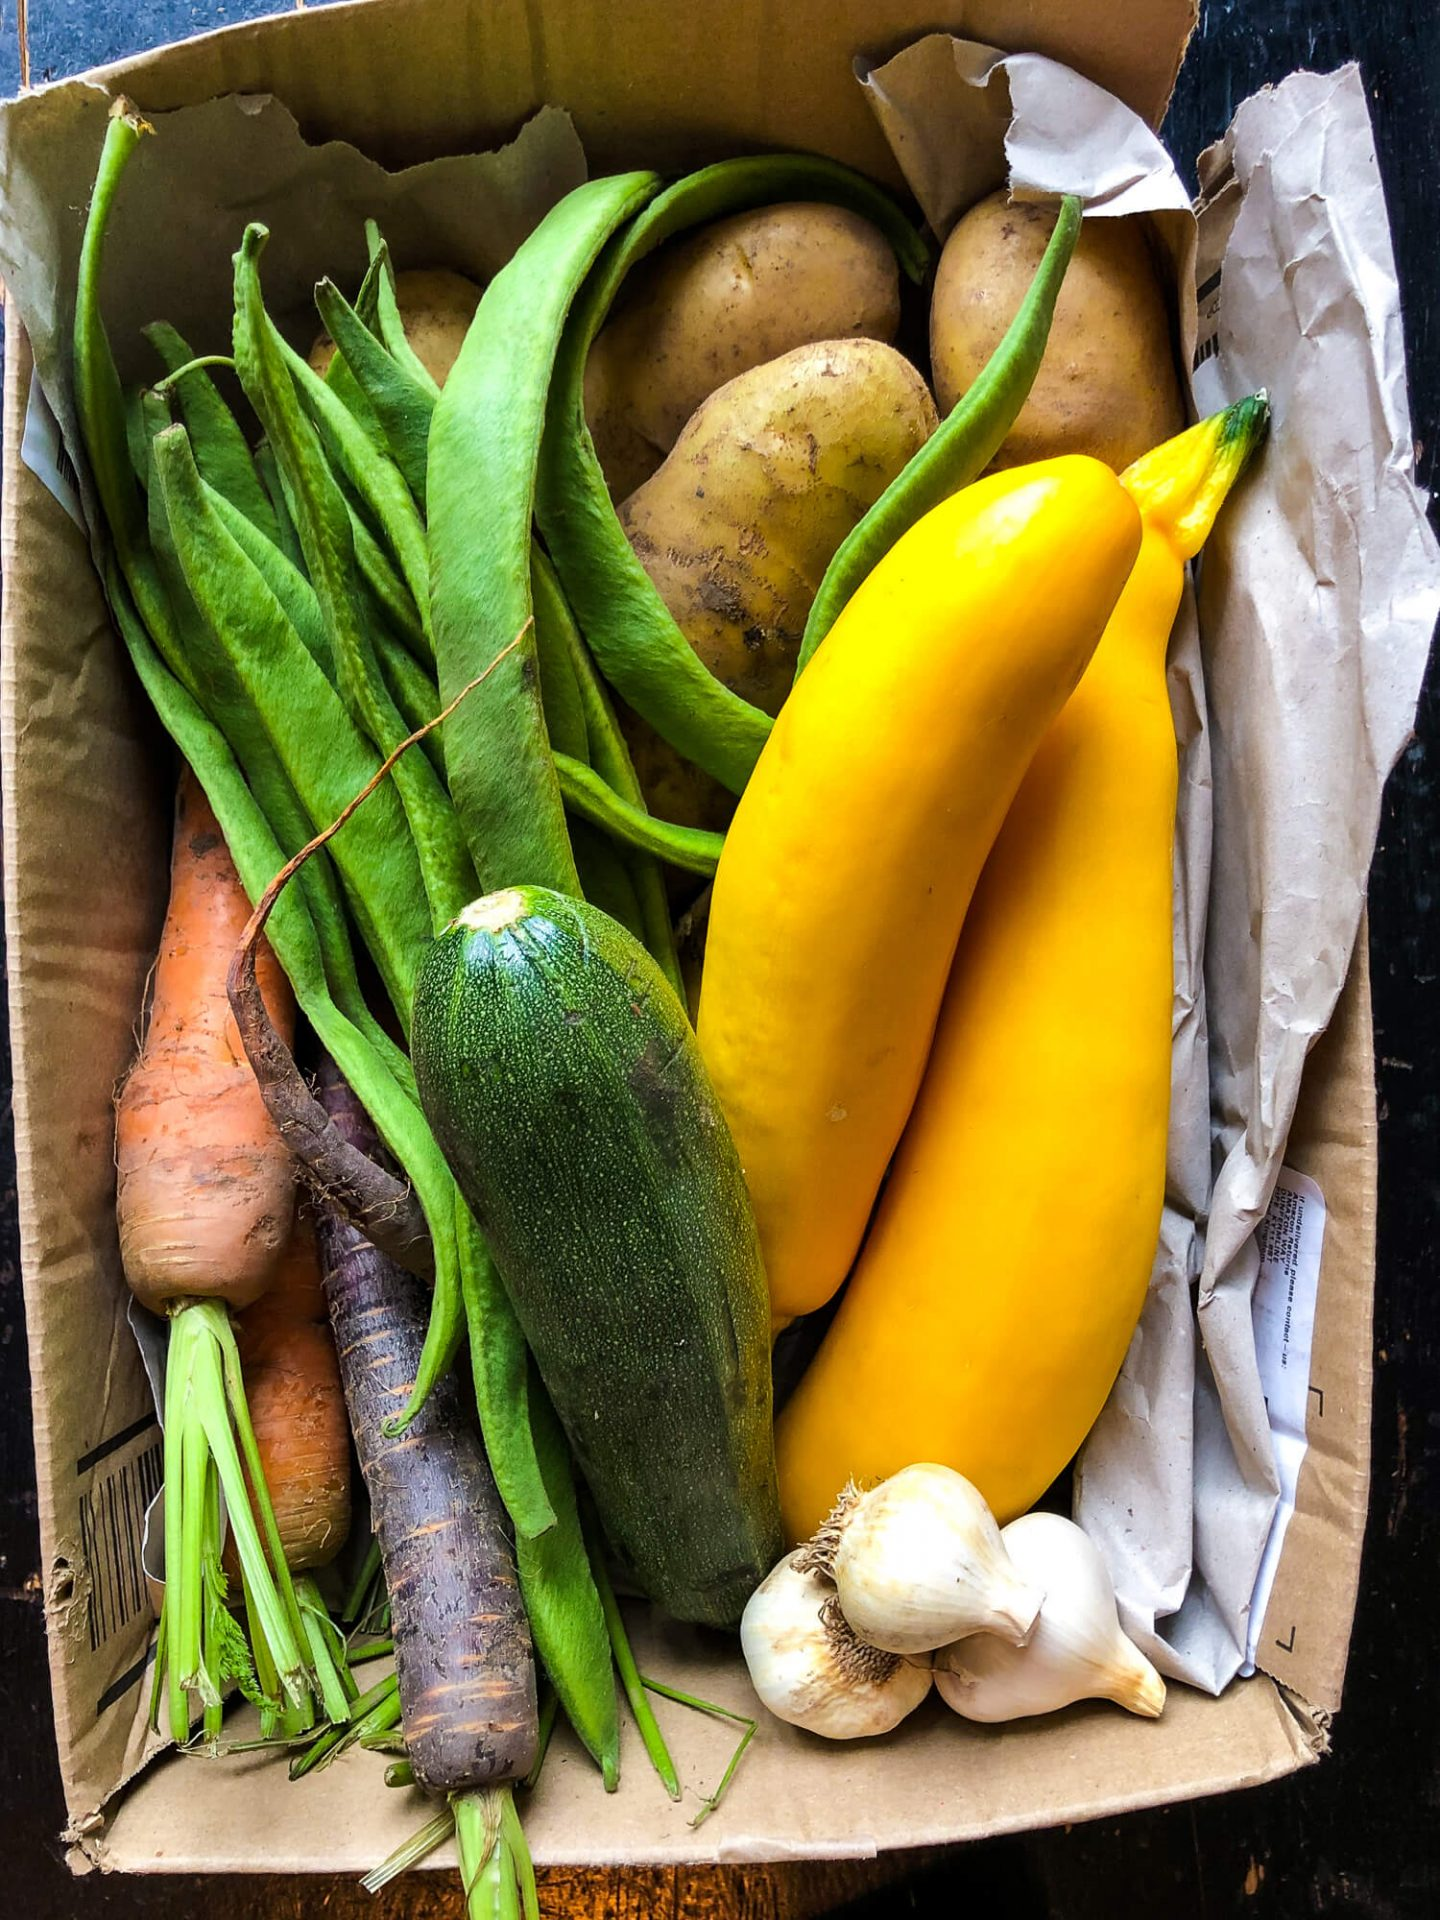 The beautiful box of vegetables from my friends allotment that gave me the inspiration for my raw courgette salad recipe.